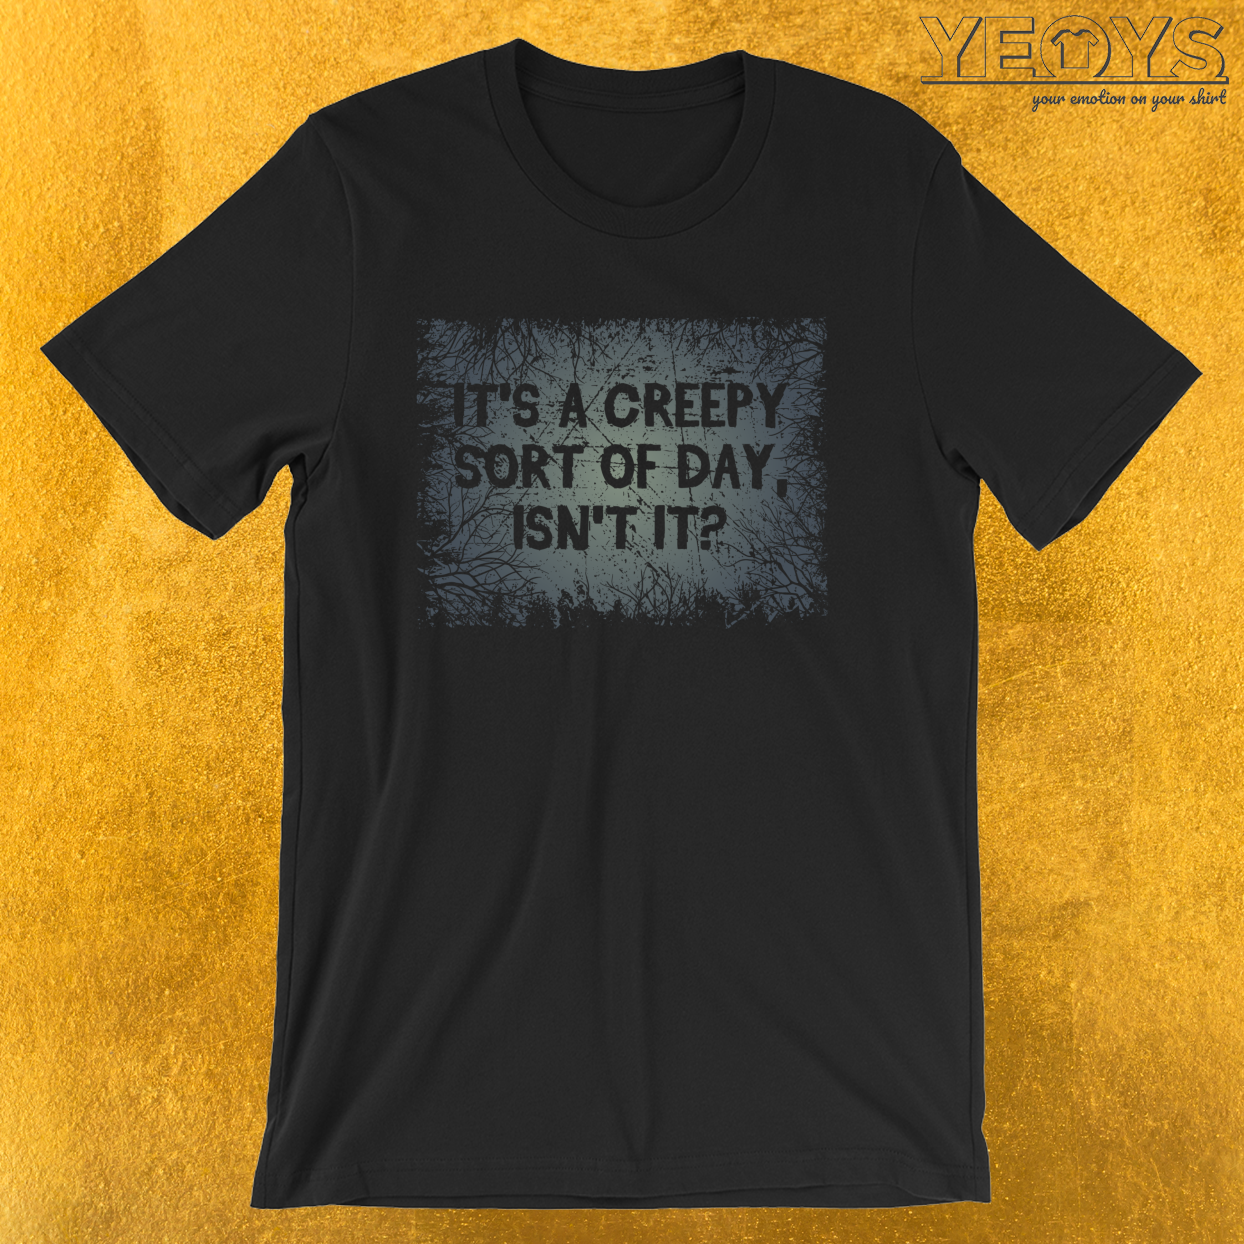 It's A Creepy Sort Of Day Isn't It – Funny Horror Movie Tee